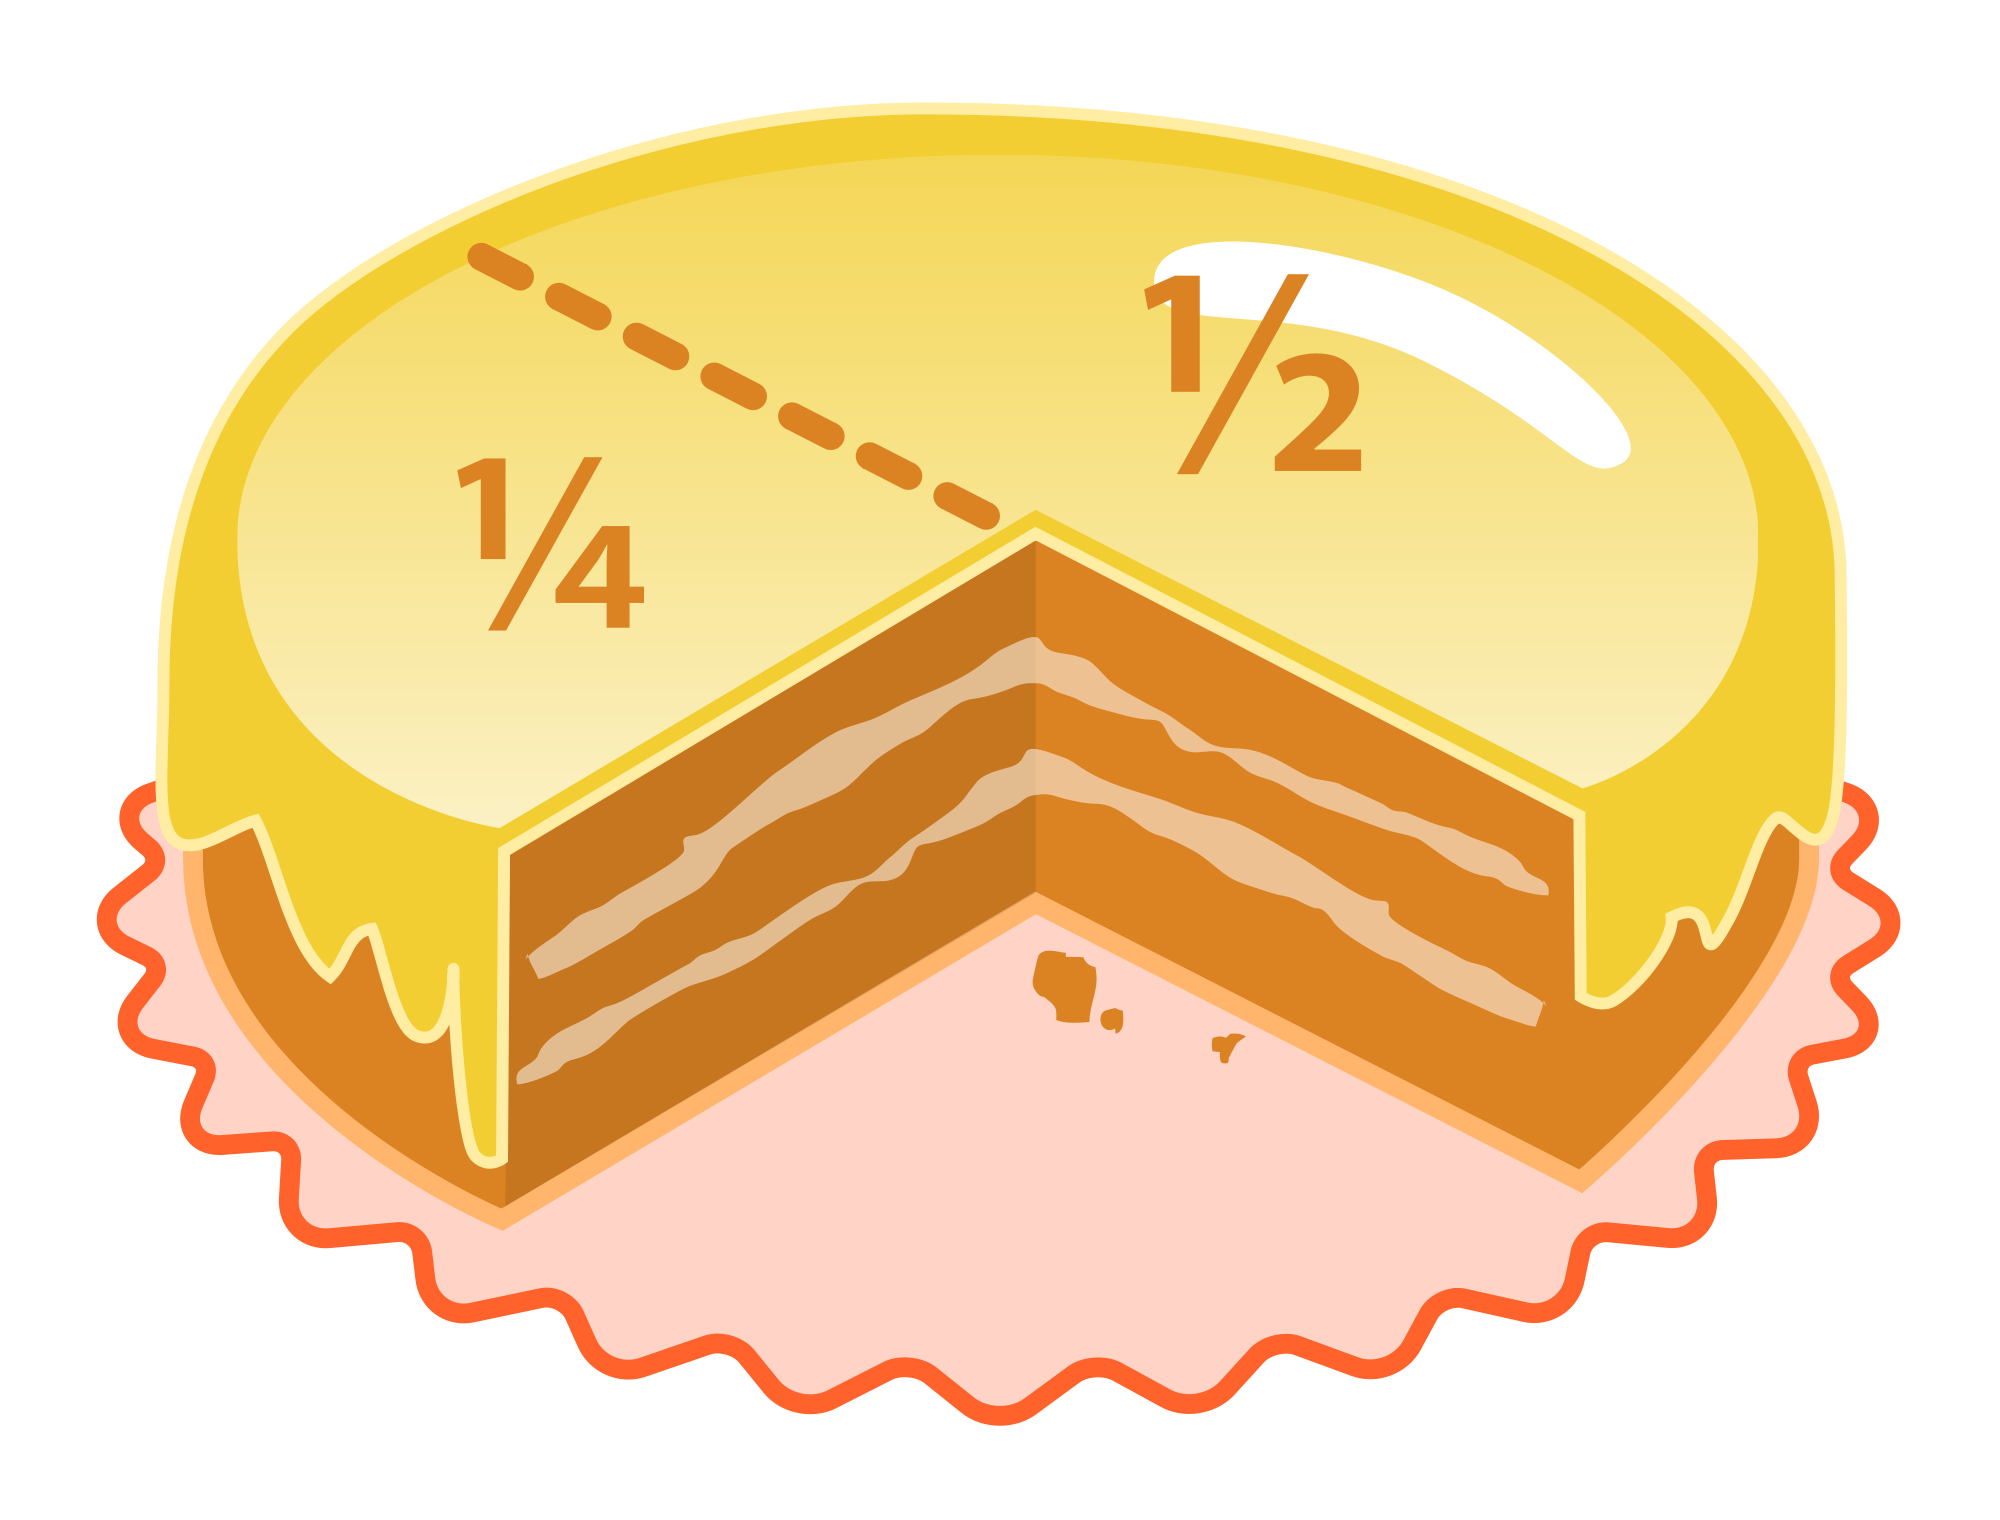 Fraction clipart cake. Glossary desktop backgrounds maths